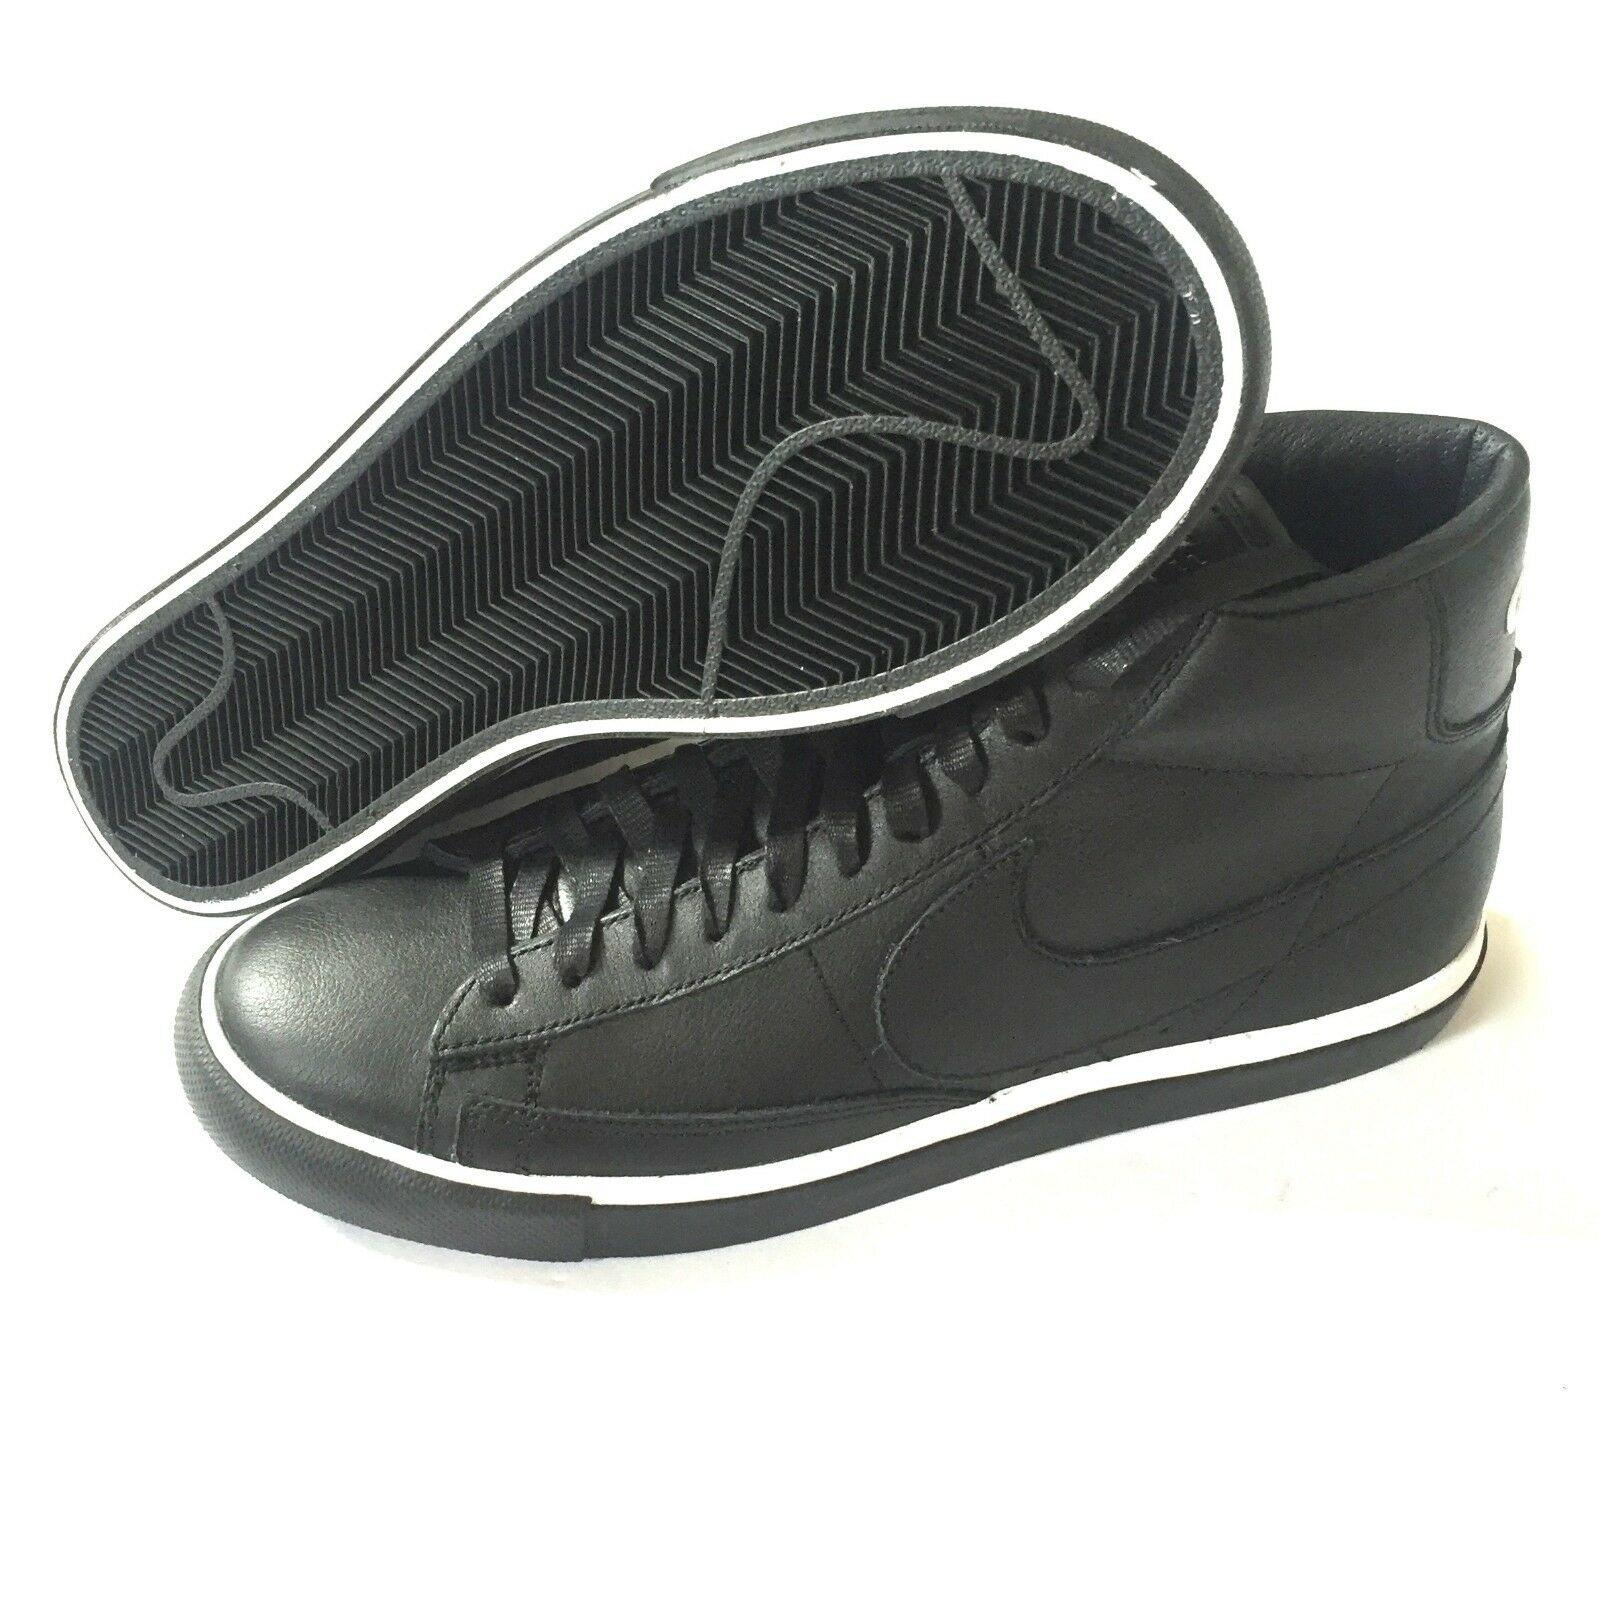 NWT Nike Nike NWT Comme des Garcons CDG Black Blazer High Leather Sneakers Shoe AUTHENTIC b7359b